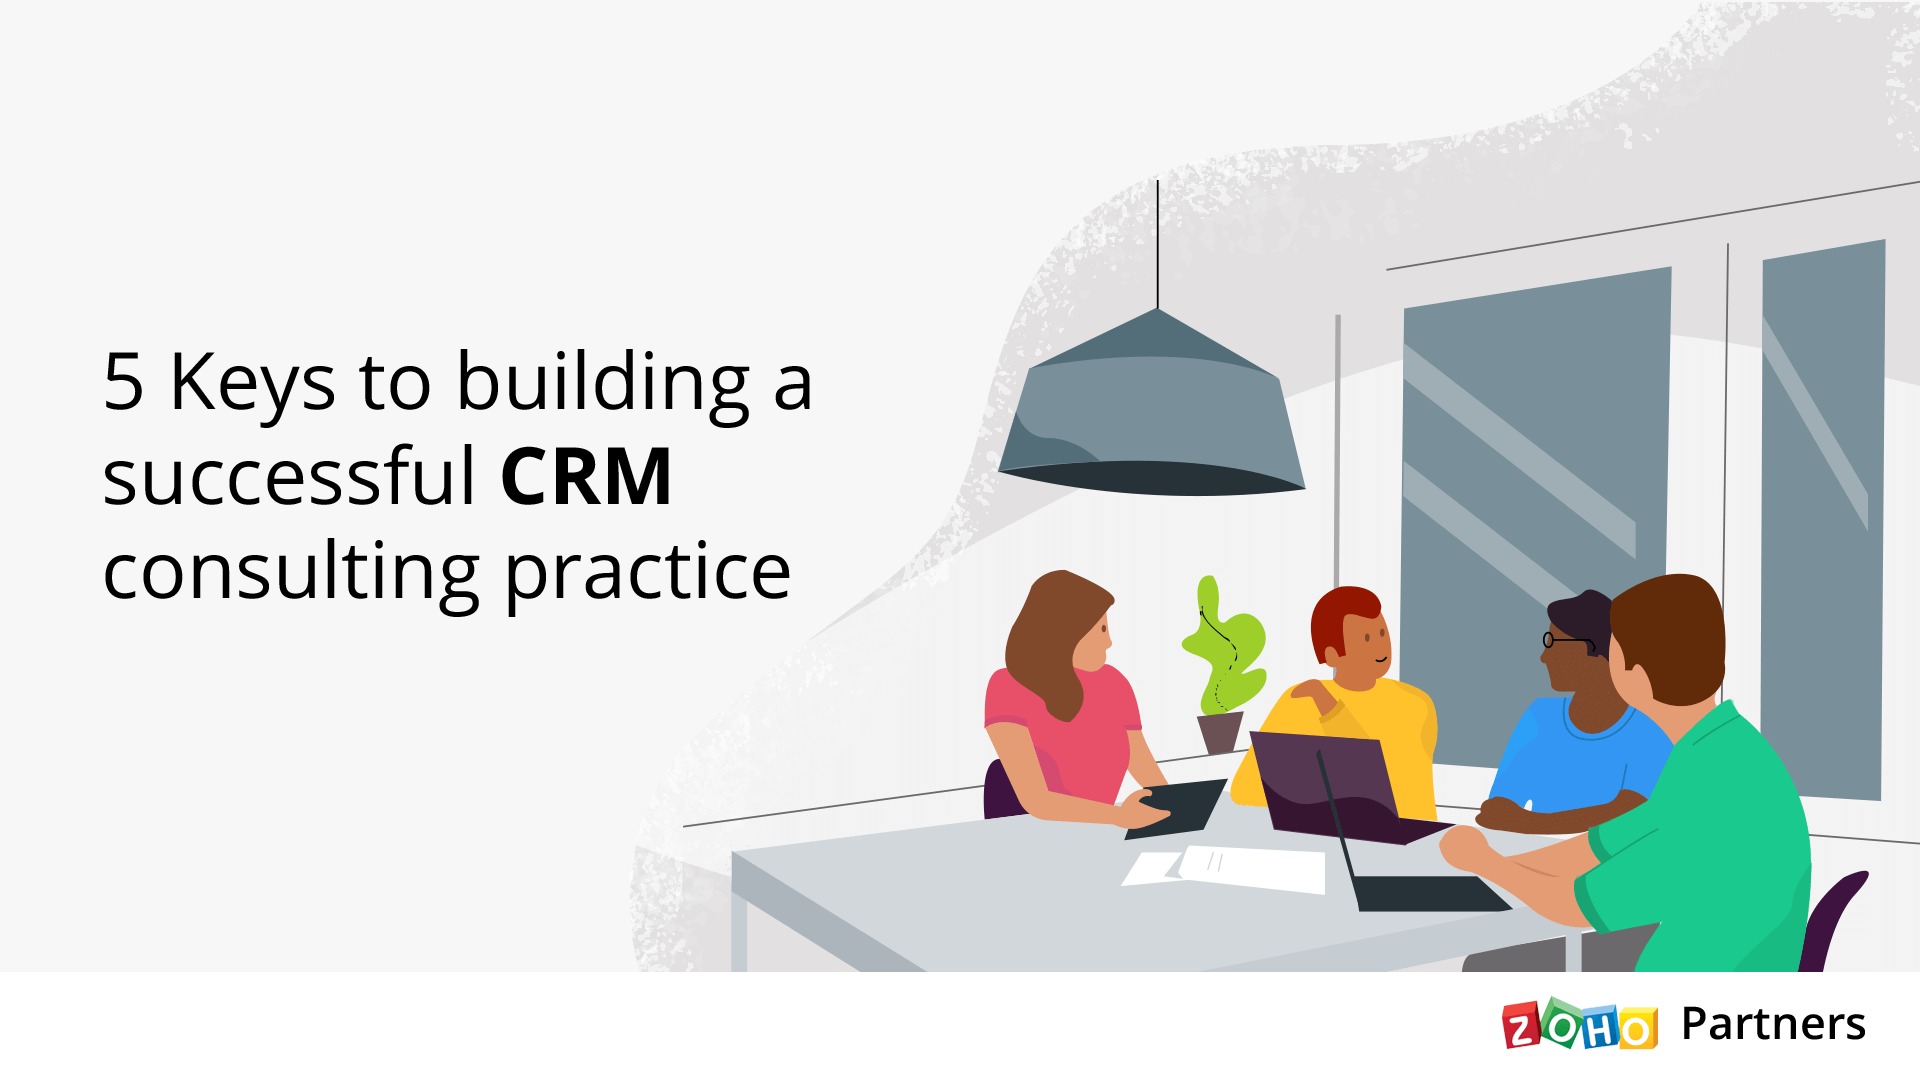 5 keys to building a successful CRM consulting practice